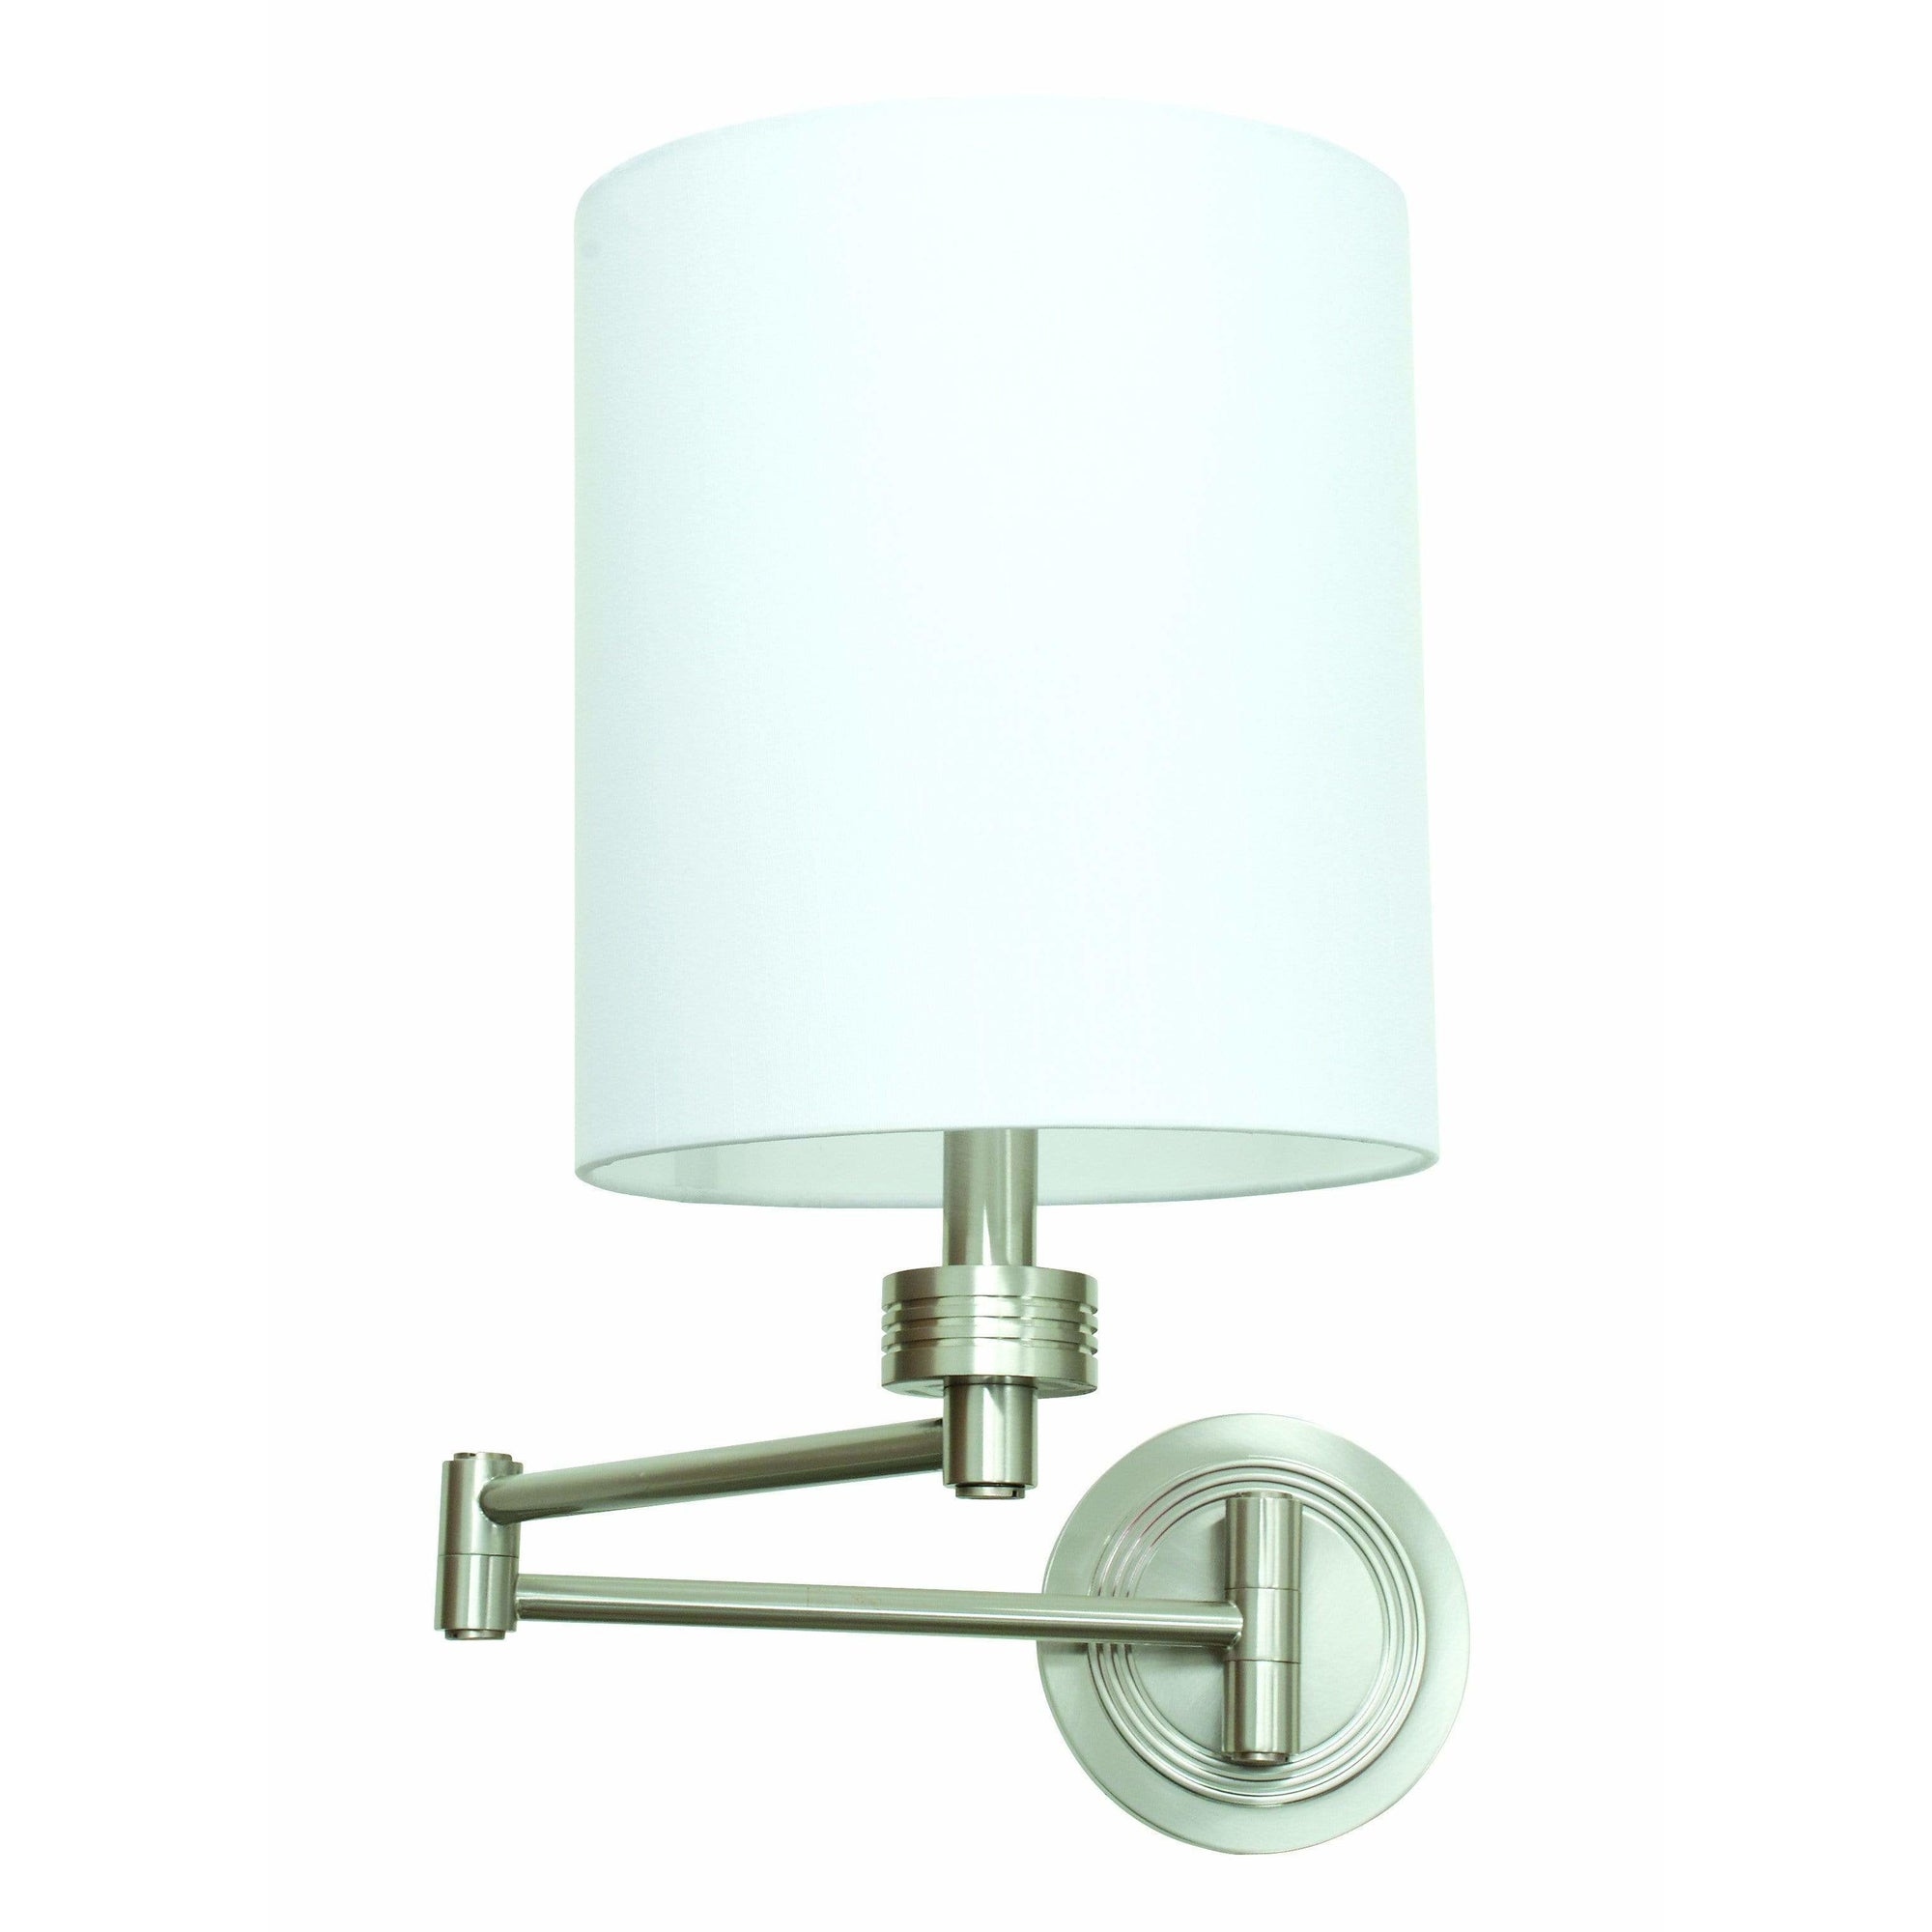 House Of Troy Wall Lamps Swing Arm Wall Lamp by House Of Troy WS775-SN